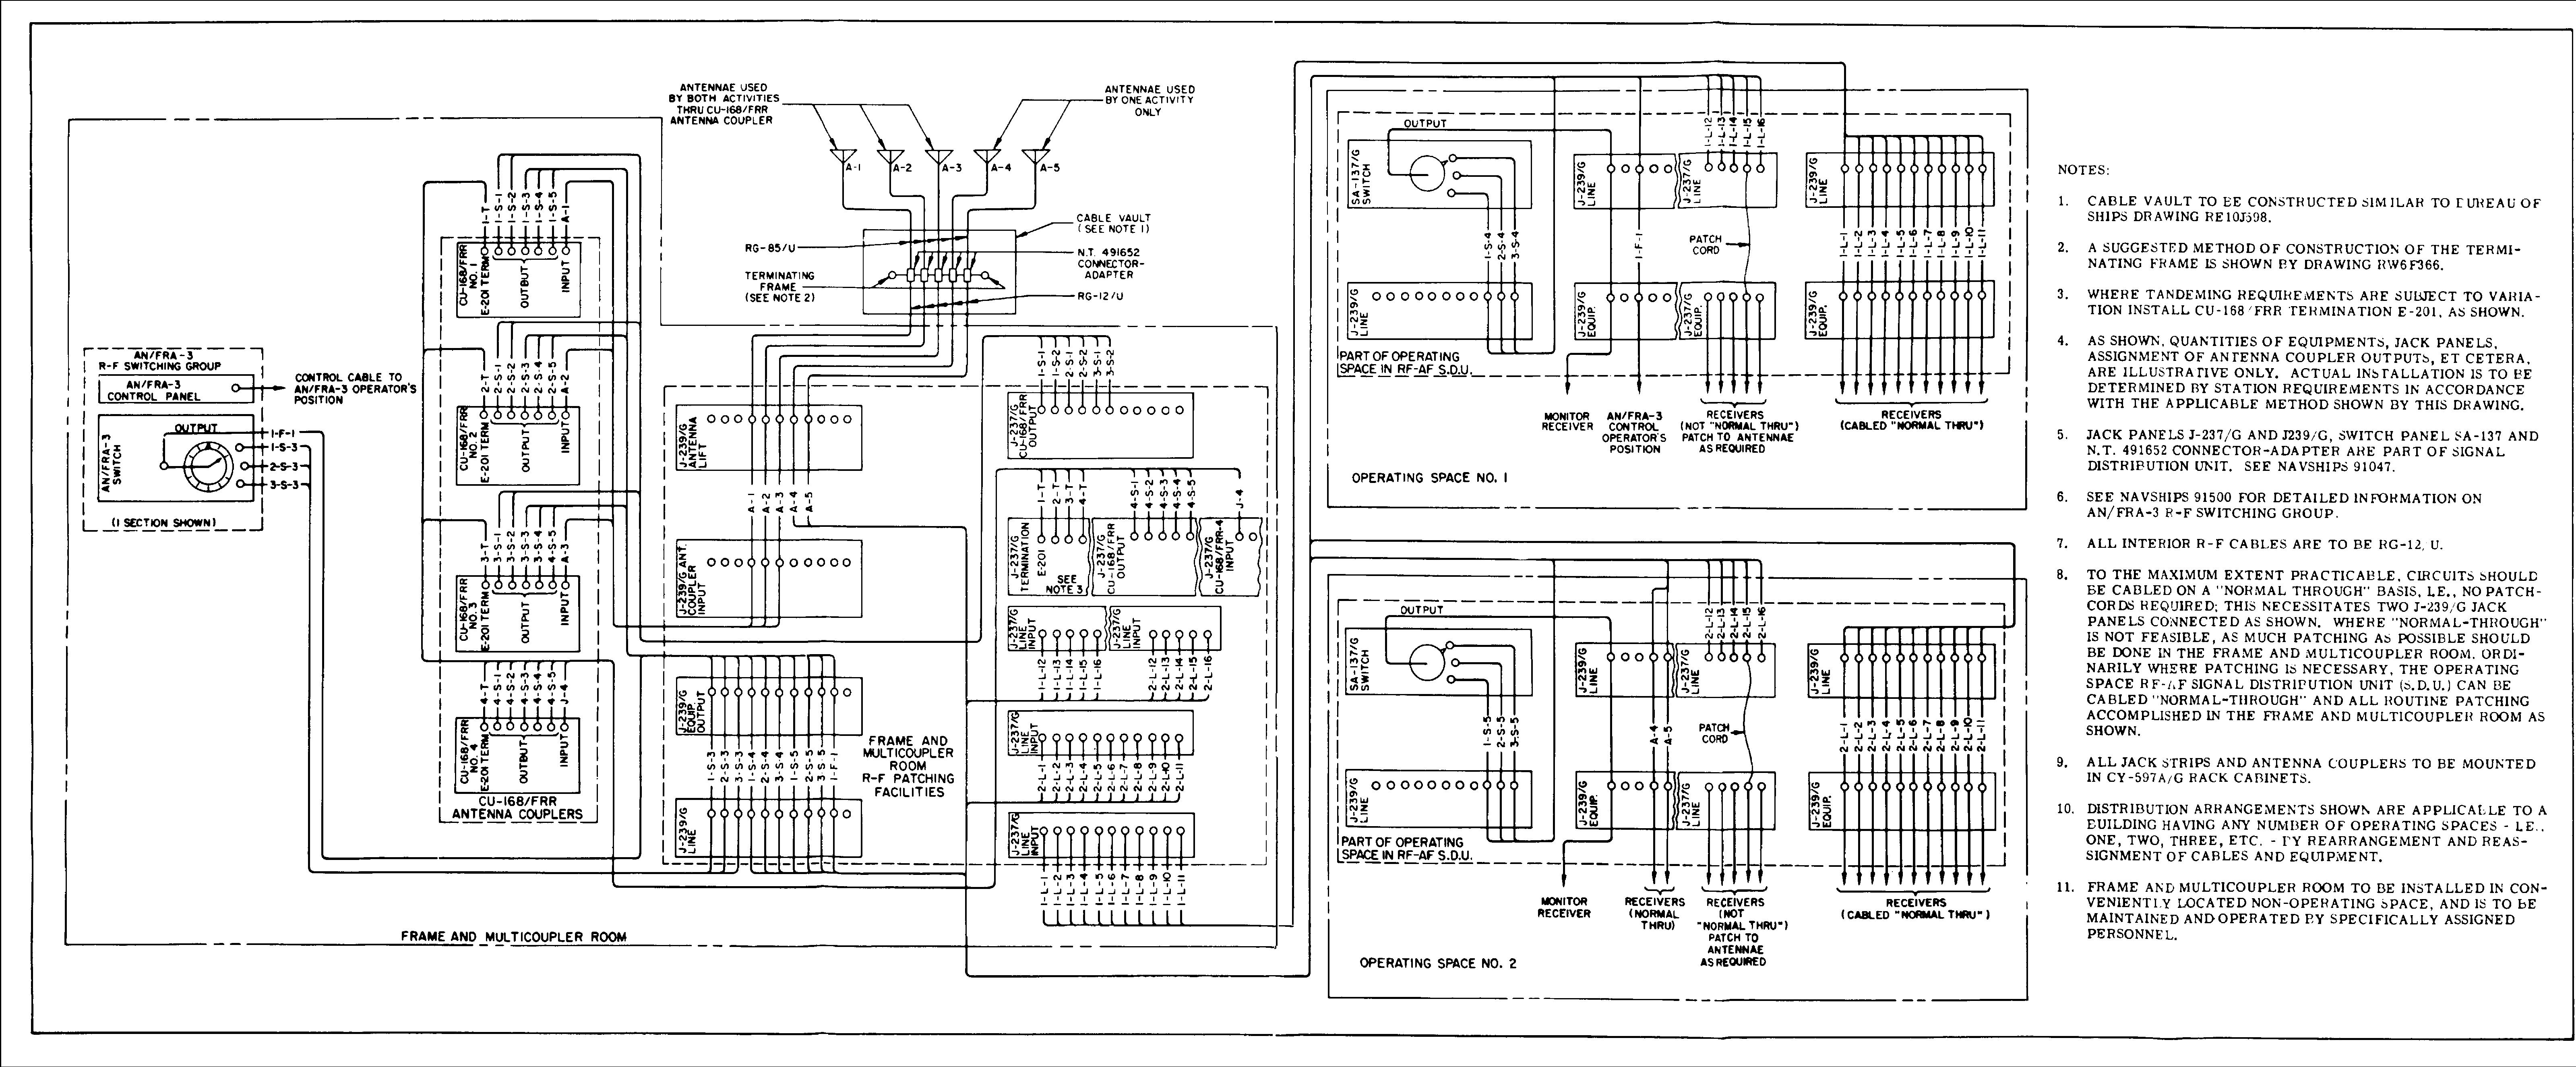 Navy Wire Diagram Block And Schematic Diagrams Bv8962 Car Wiring Explained Receiving Rf Patch Panels Switches Rh Virhistory Com Ford 240v Hot Tub